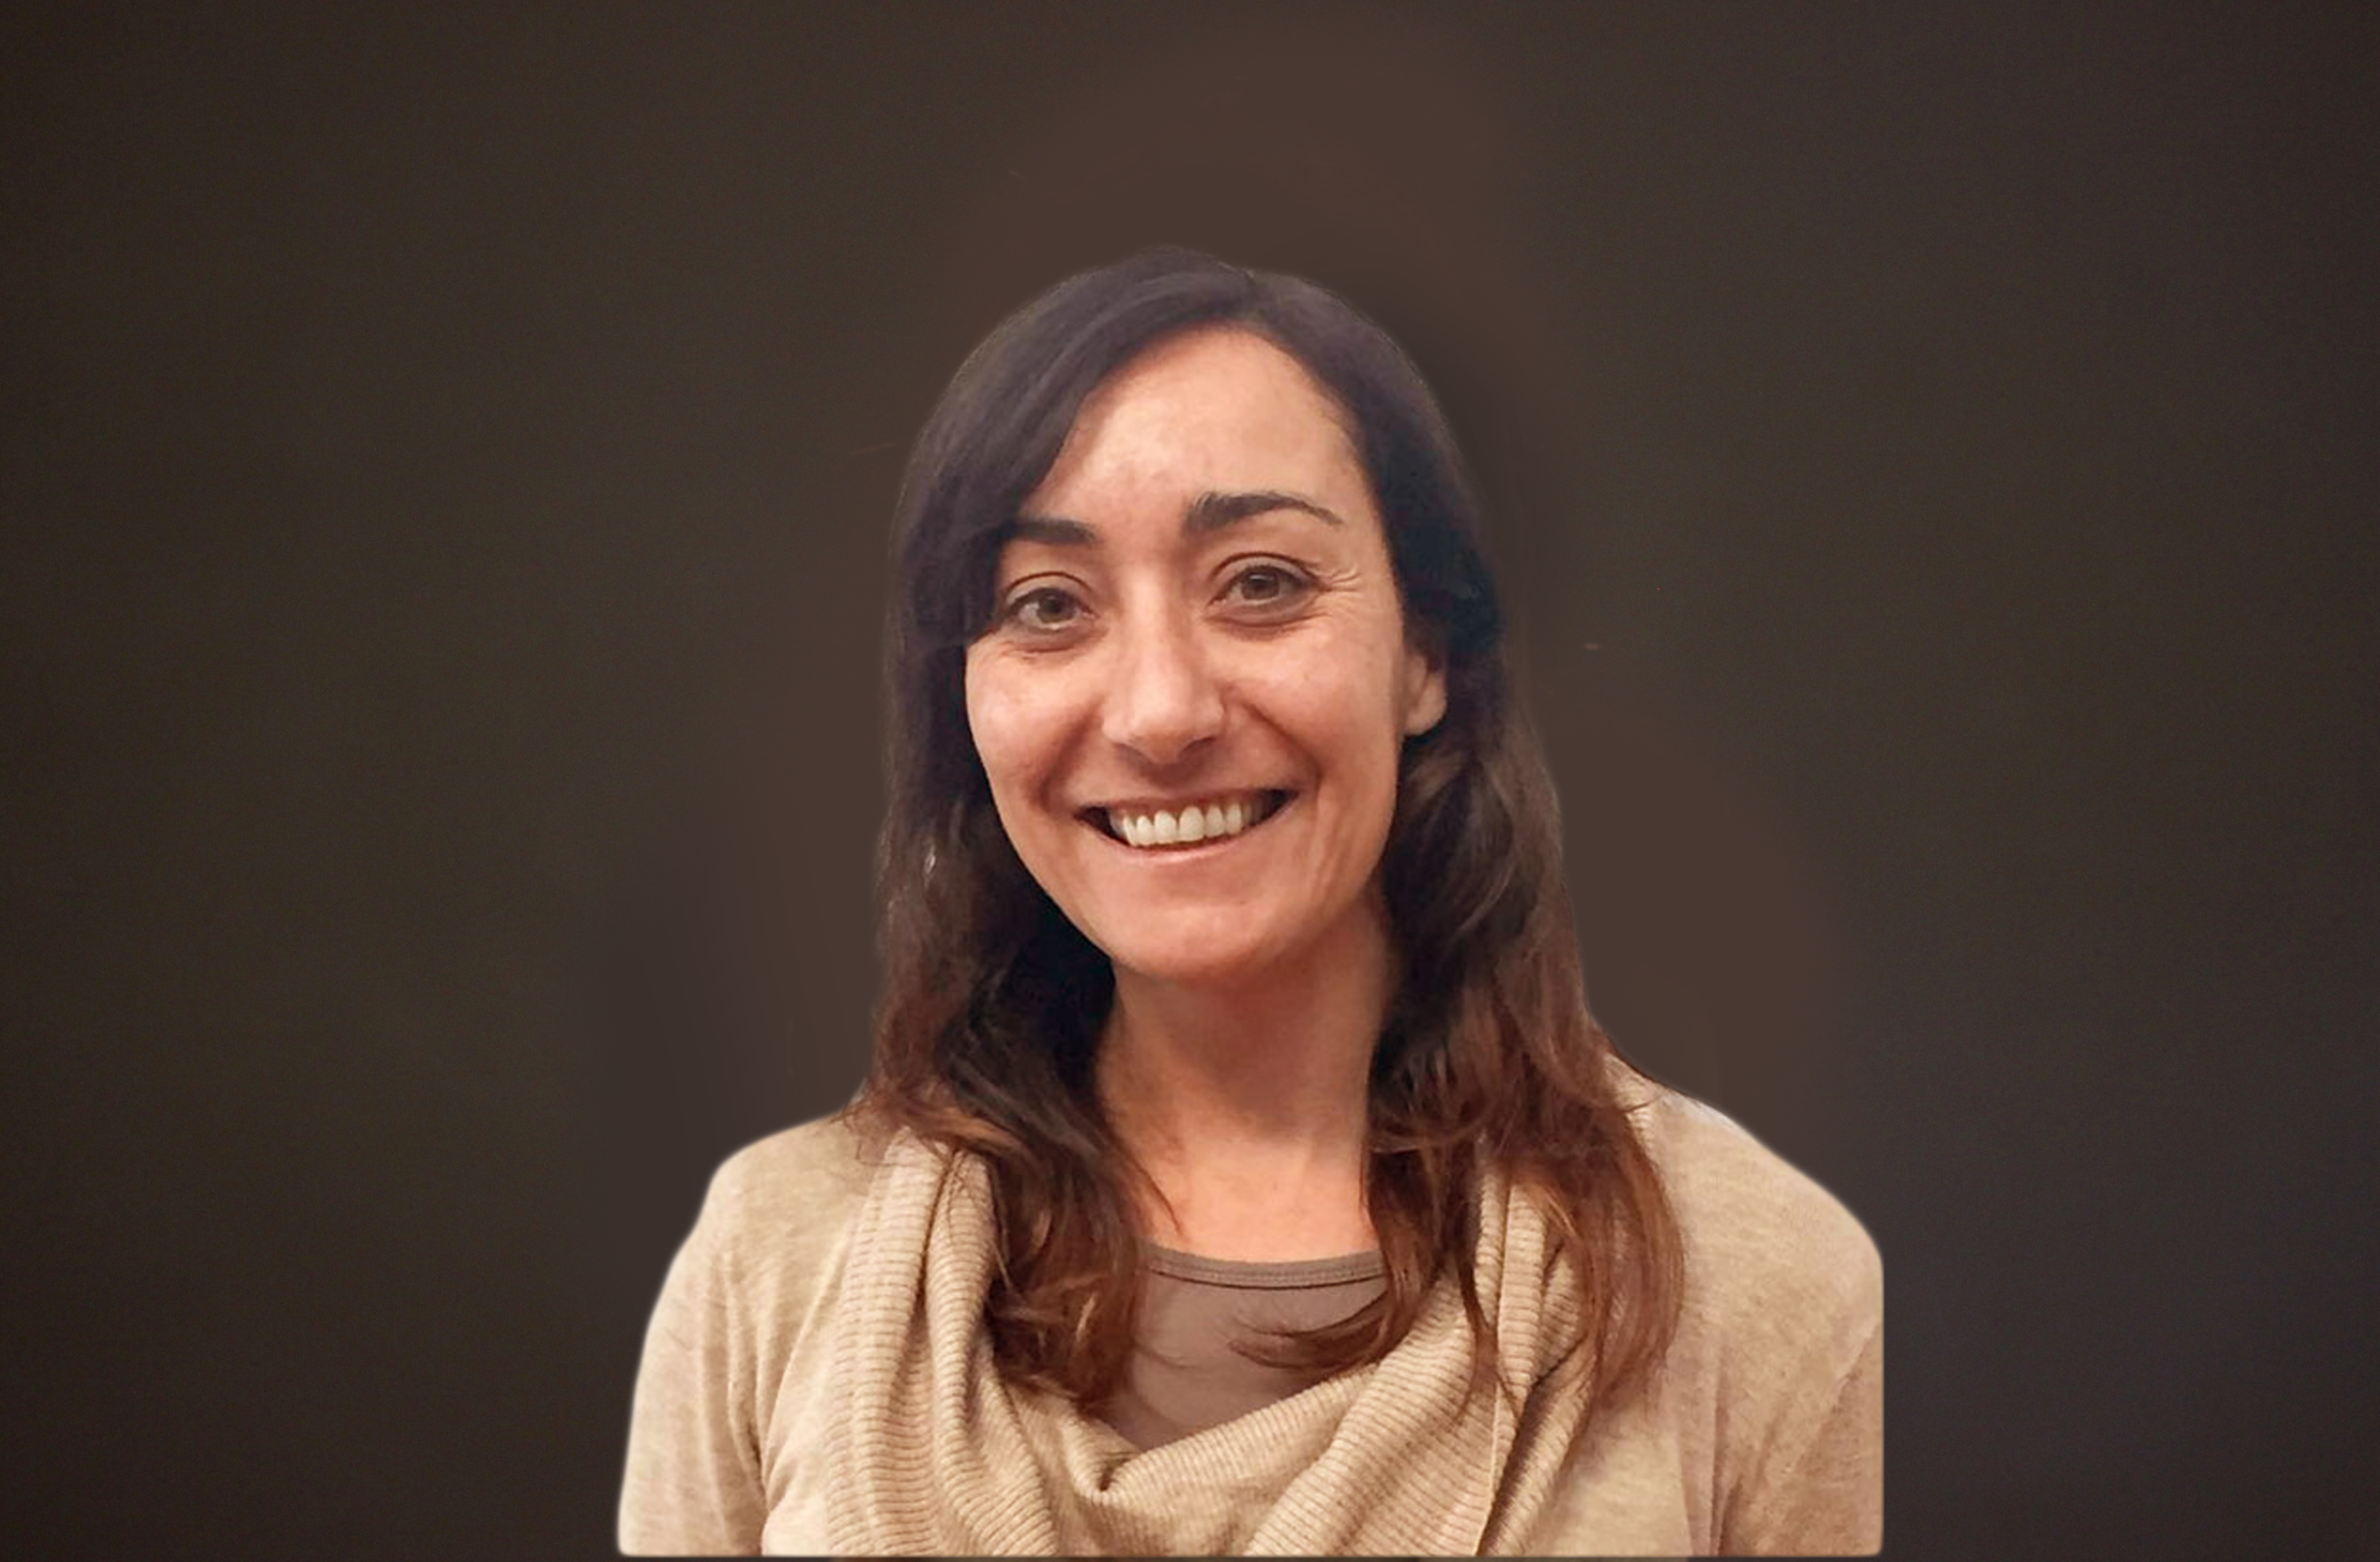 GEMA SALA - Gema is active in the Barcelona theatre scene as an actor/creator and director. Gema teaches acting at several locations and has played an important role in building Margolis Method Barcelona.